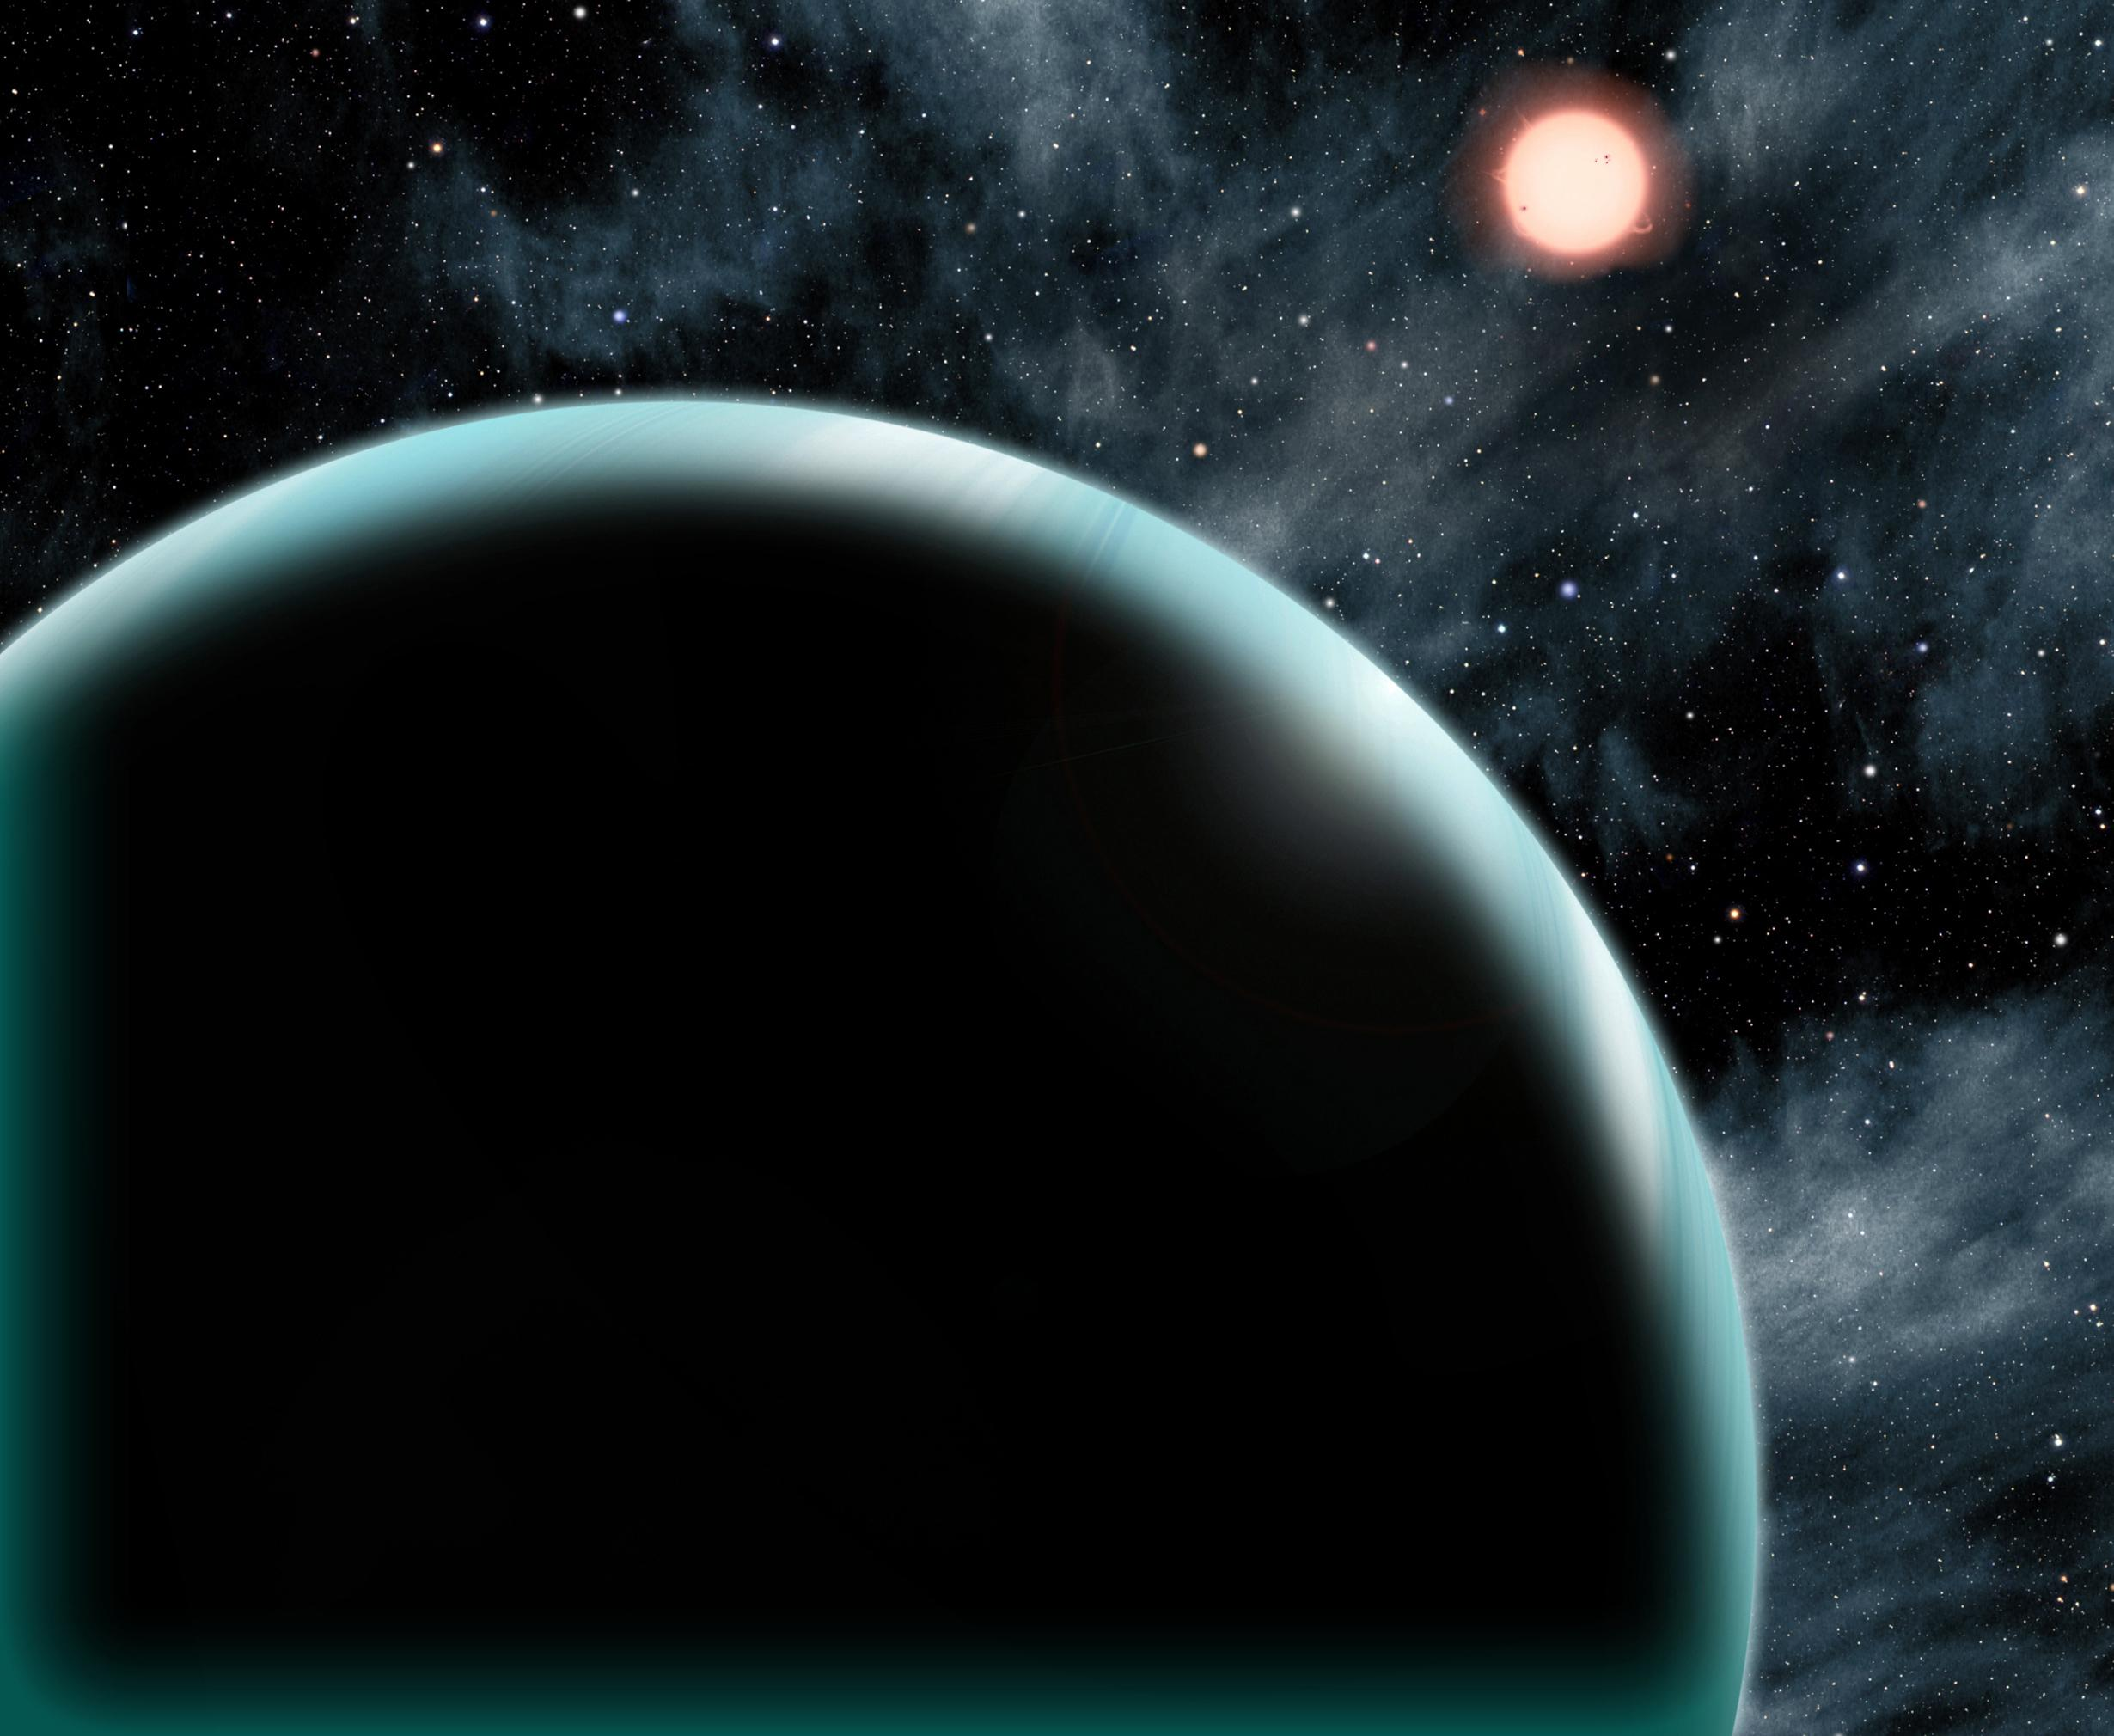 Scientists develop framework for finding life on planets outside our solar system